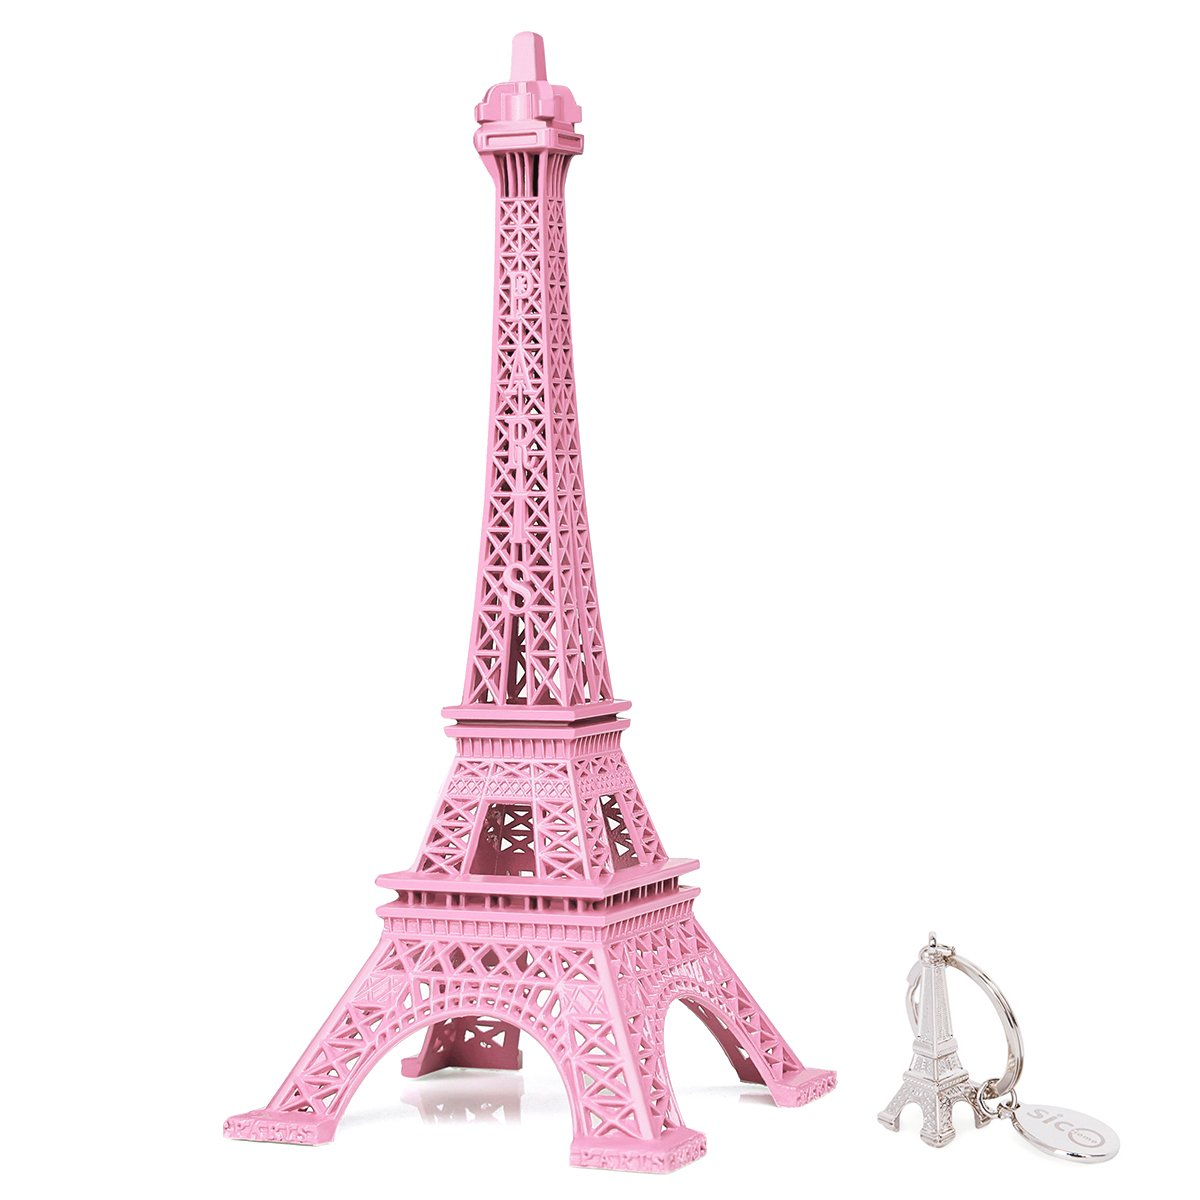 paris wedding cake topper cake topper decor eiffel tower wedding birthday 7 0 18118